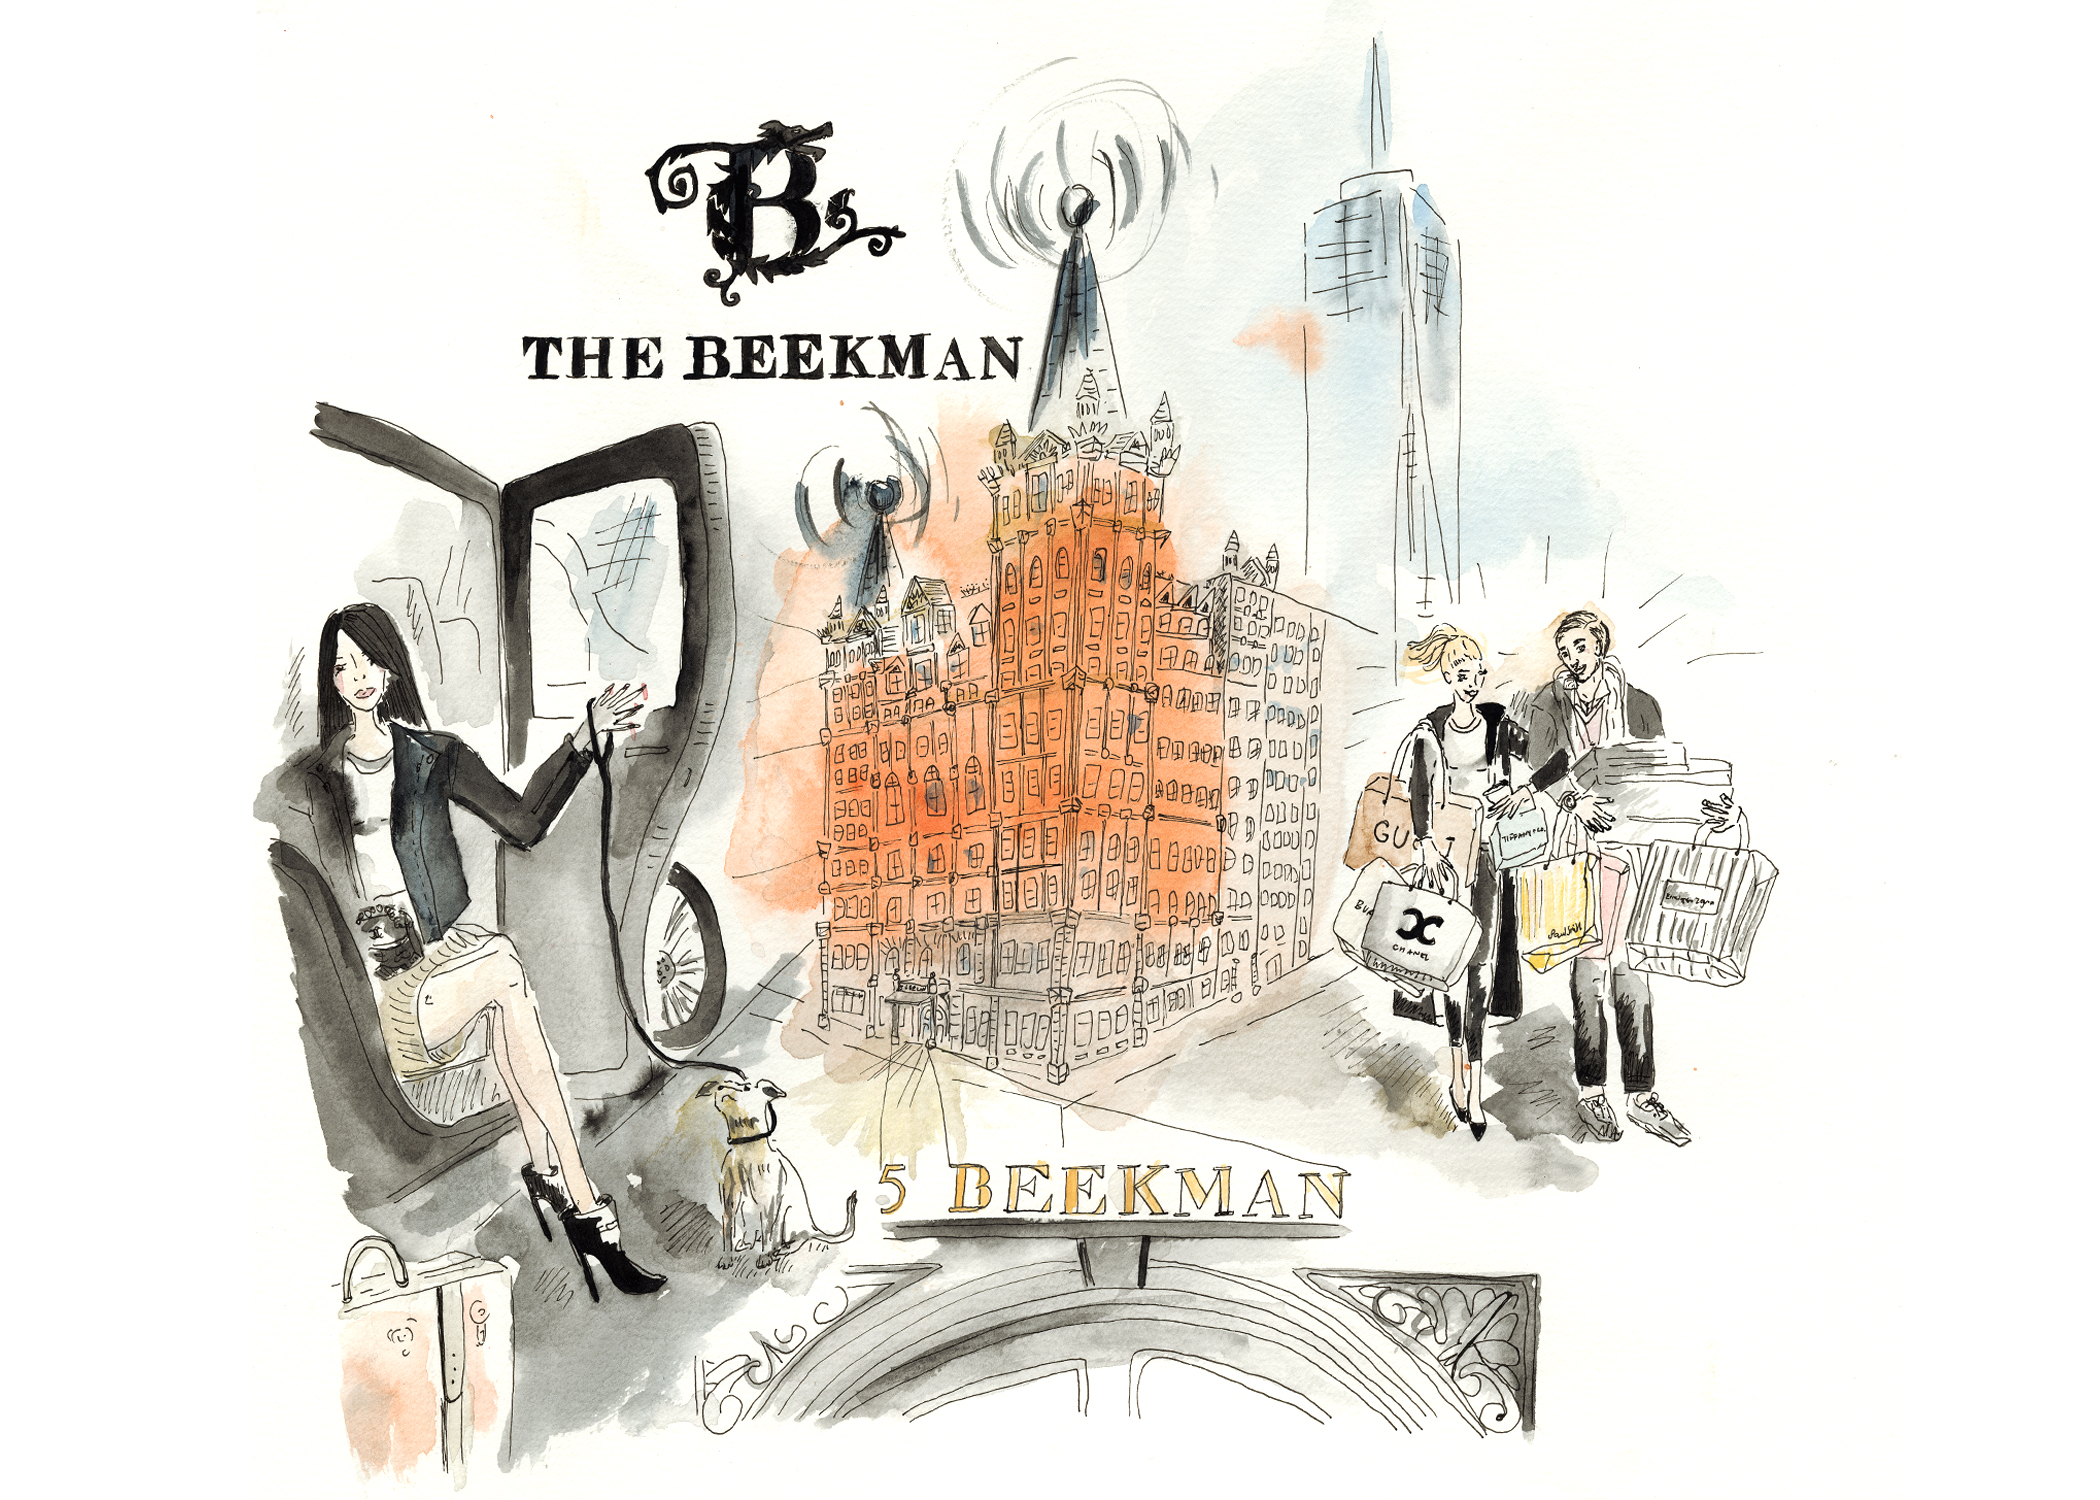 The New Beekman Today